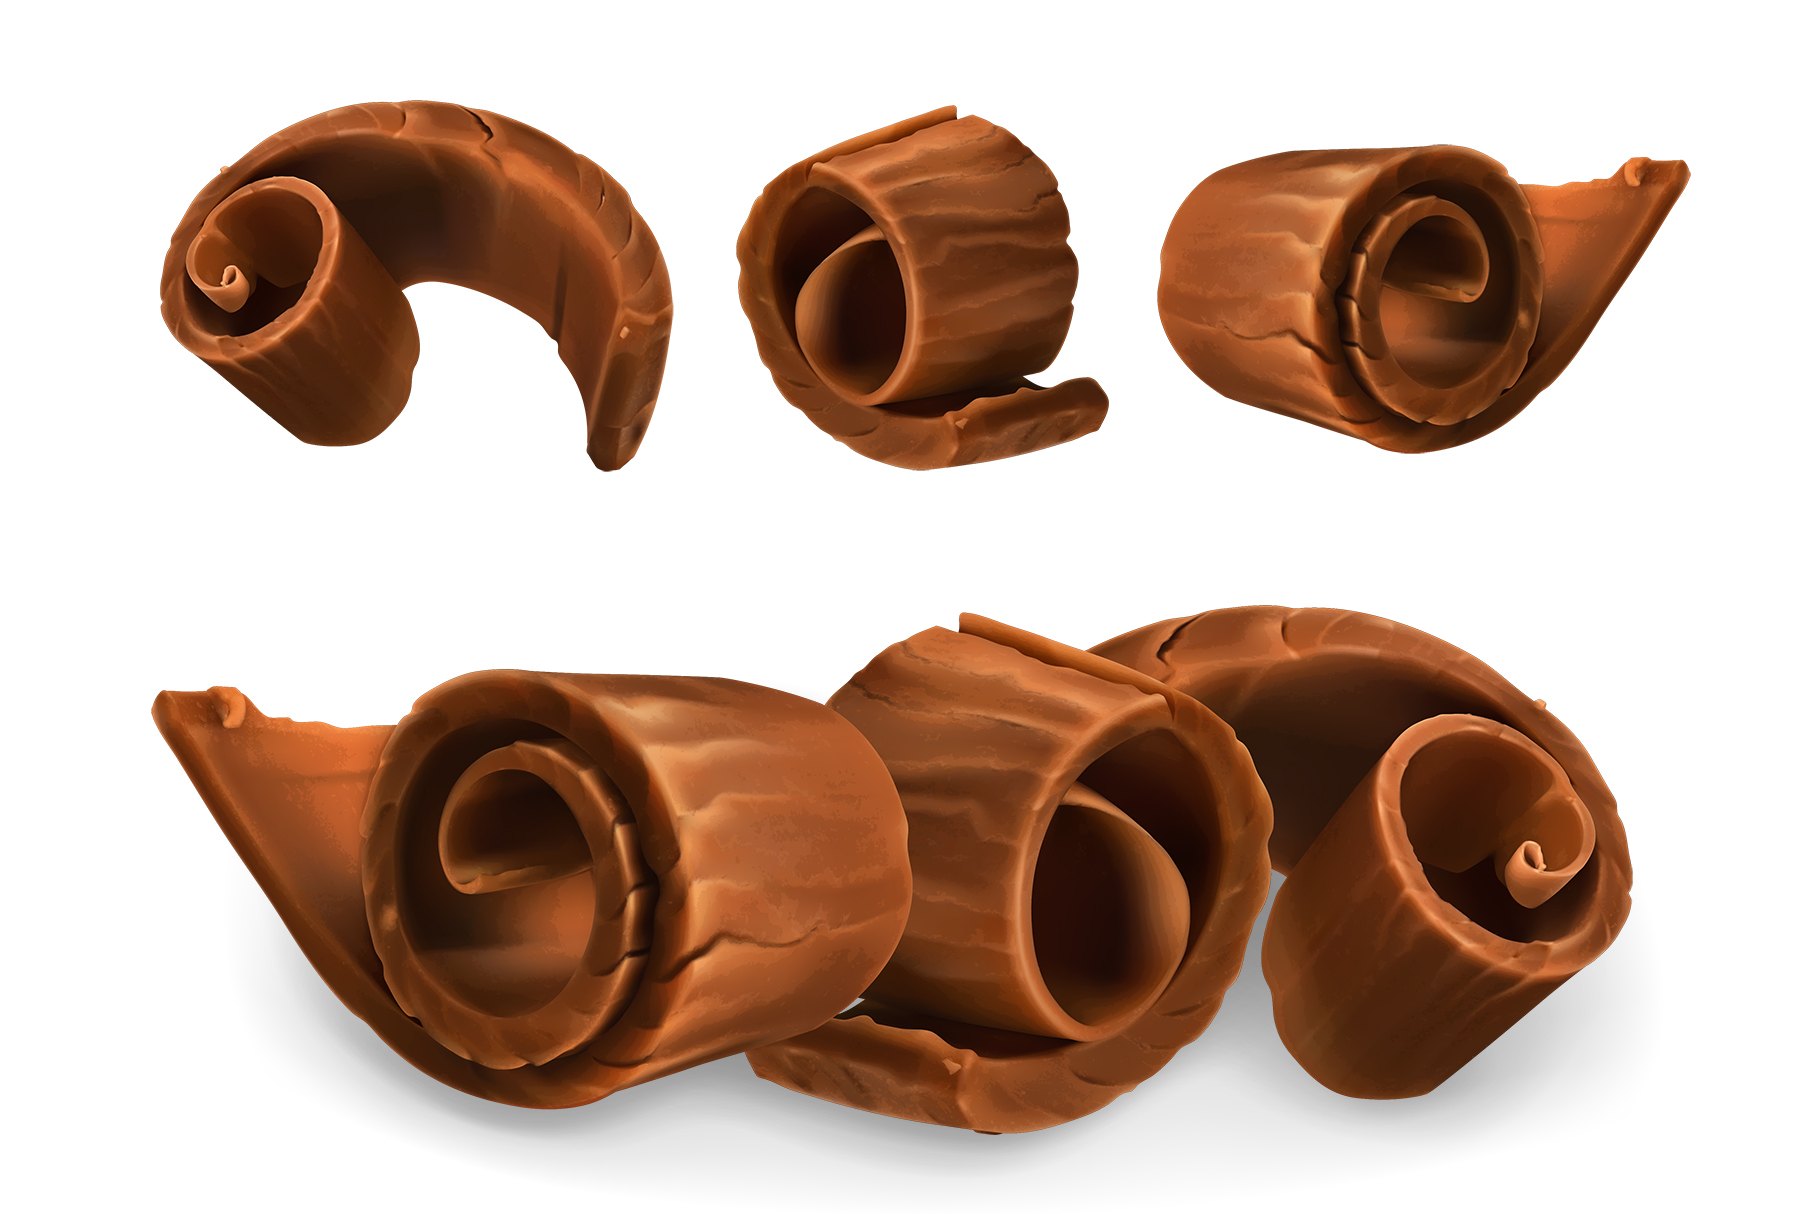 Chocolate bar, chocolate shavings, pieces, cocoa, vector set example image 4